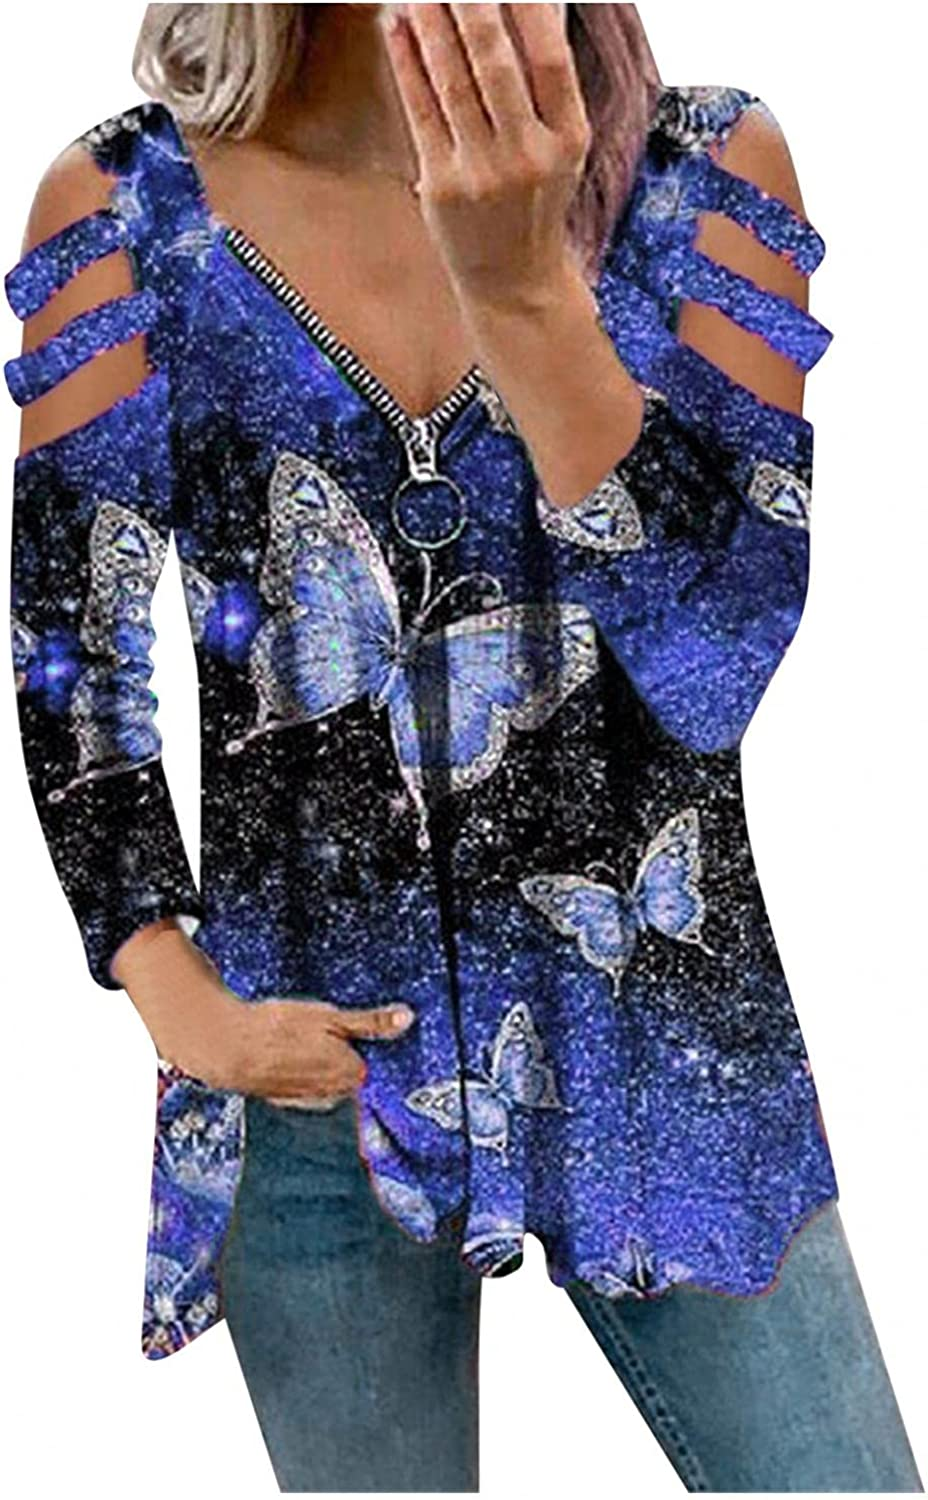 HCNTES Long Sleeve Shirts for Women,Casual V Neck Sweatshirts Cold Shoulder Blouse Butterfly Print Zip Up Tops